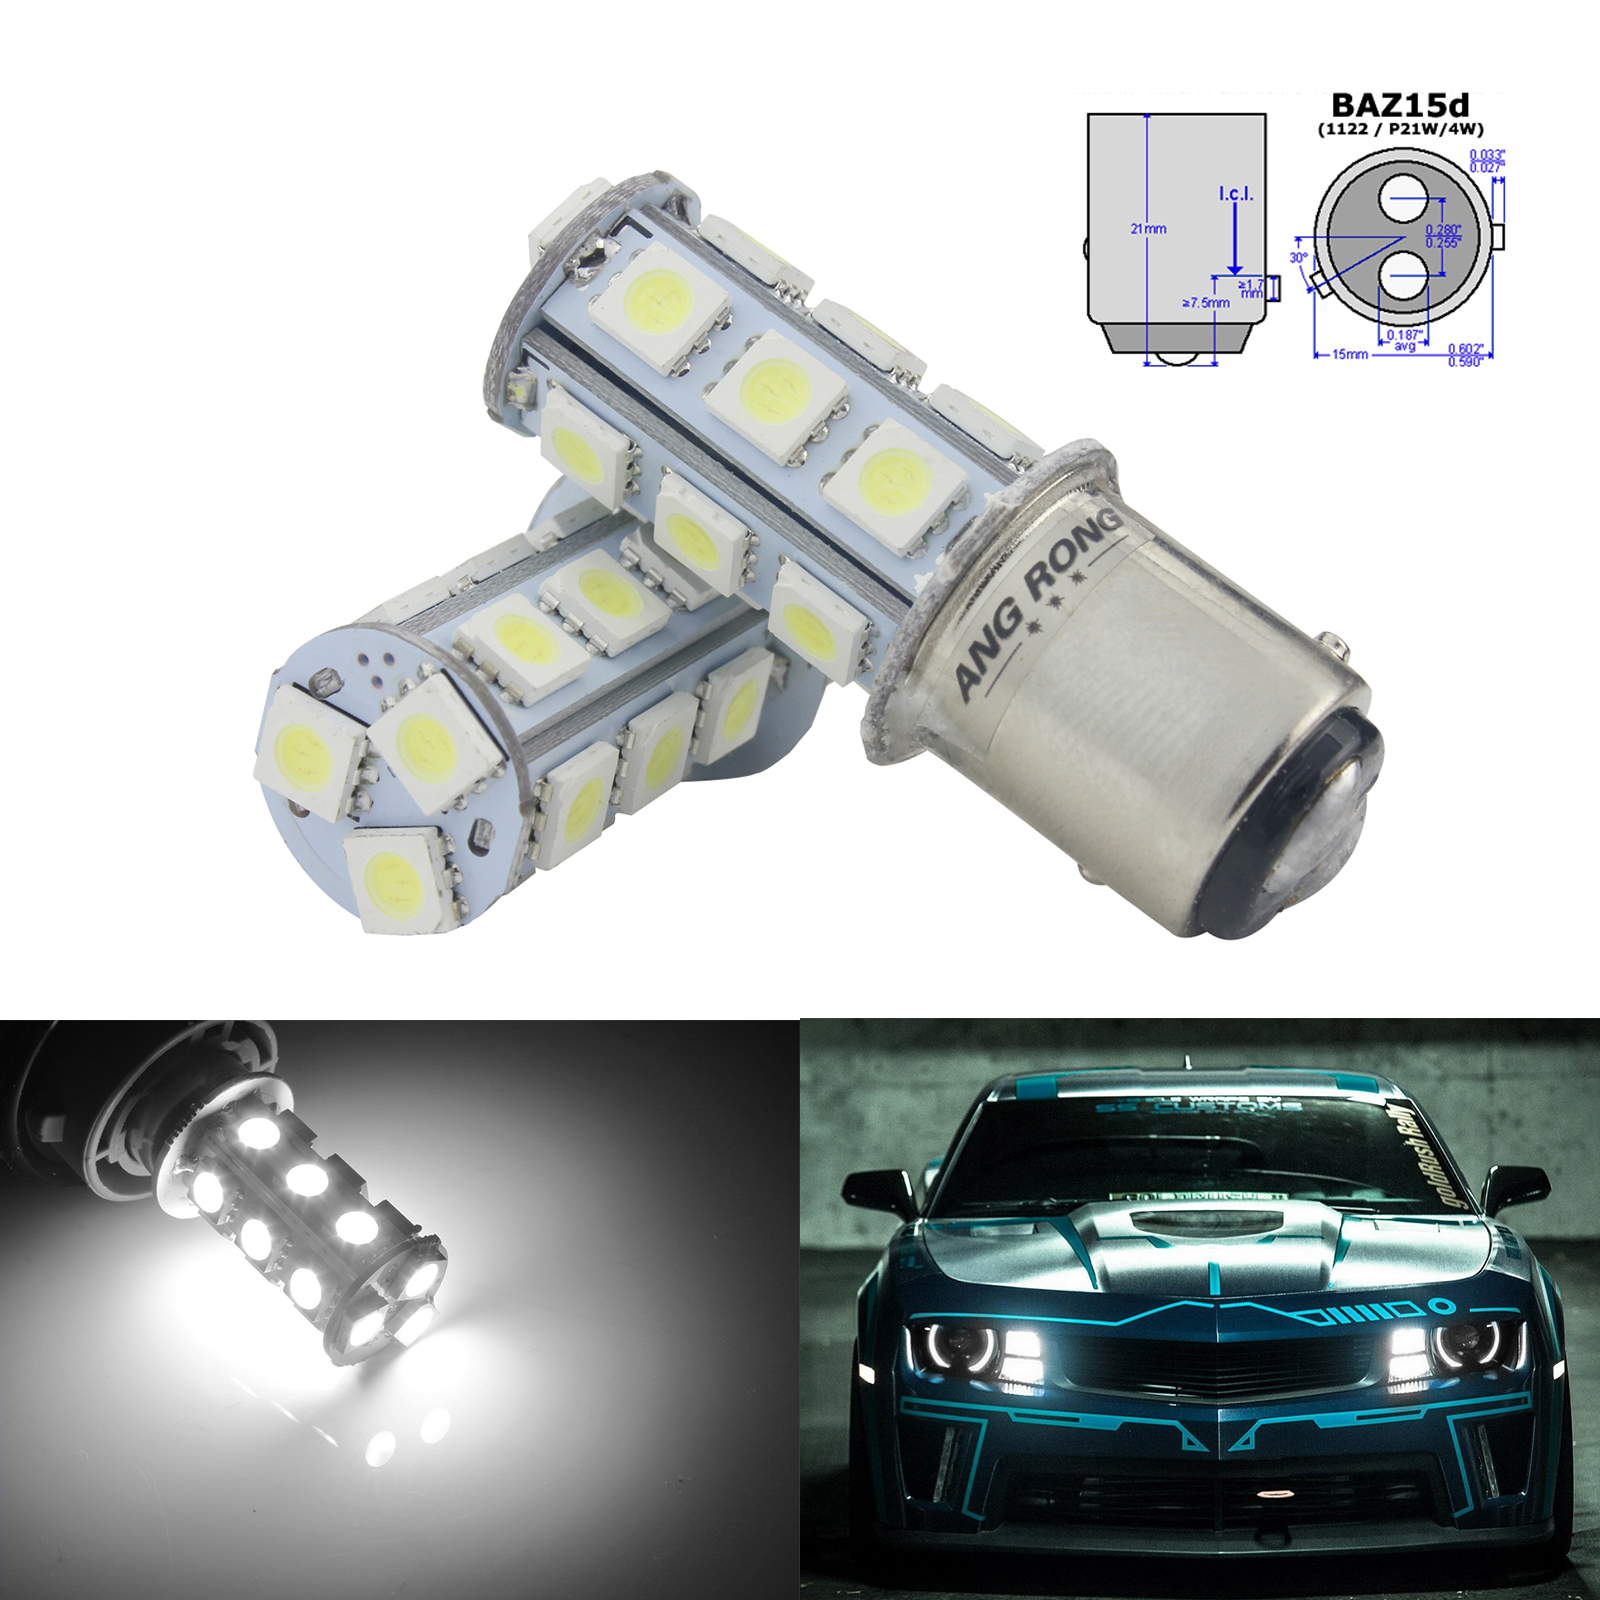 ANGRONG 2x BAZ15d P21/4w 566 18 SMD LED Bulb Auto Parking Tail Stop Brake Light White